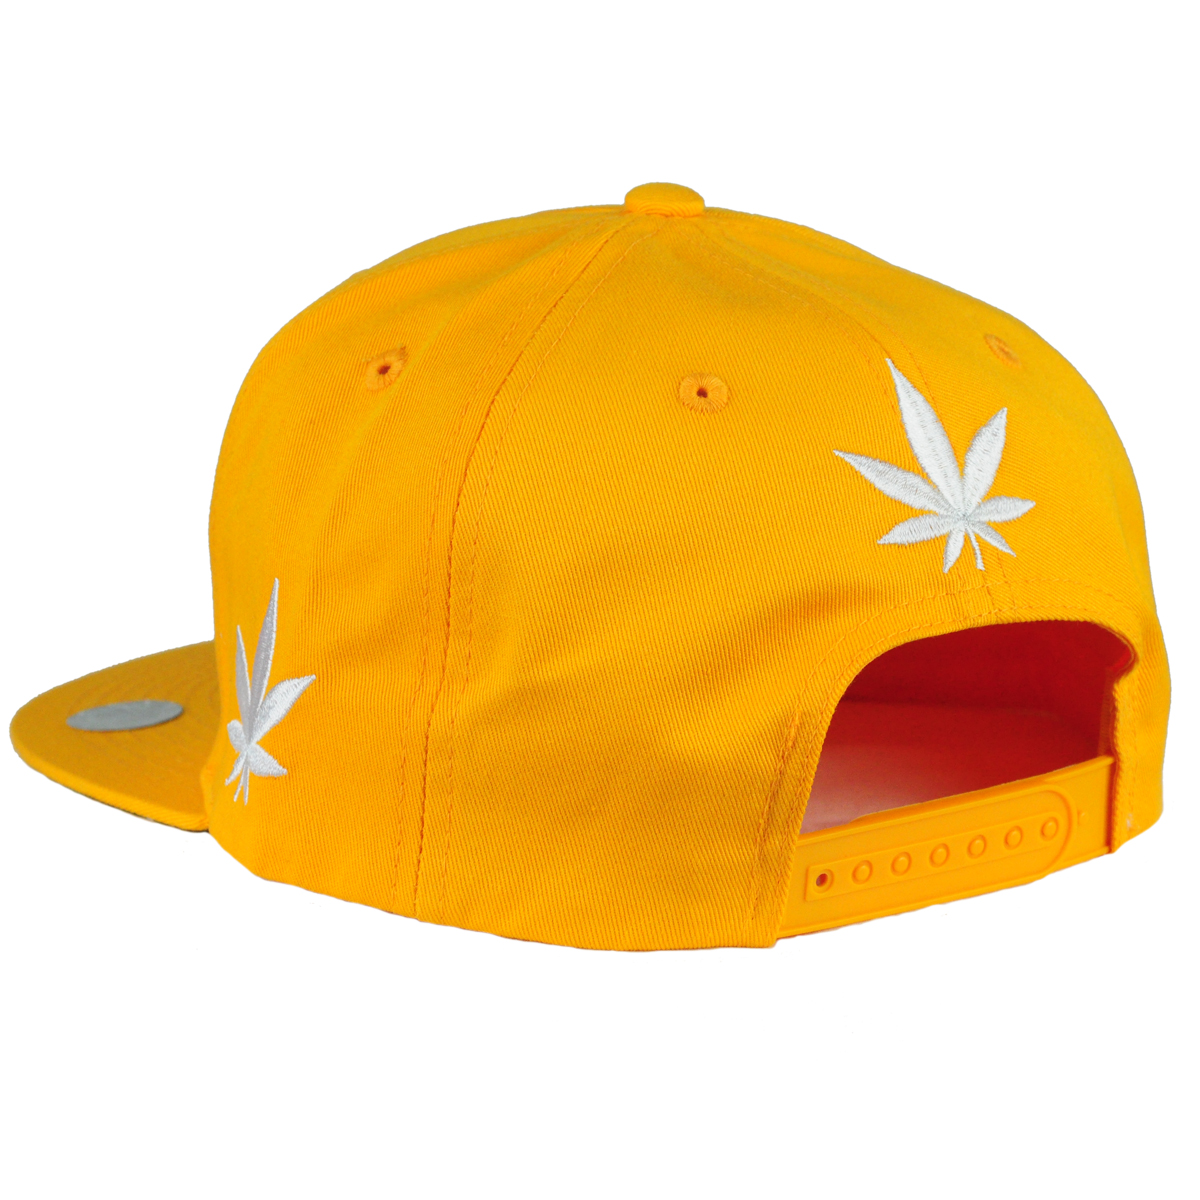 420 Pot Leaf Hat Yellow